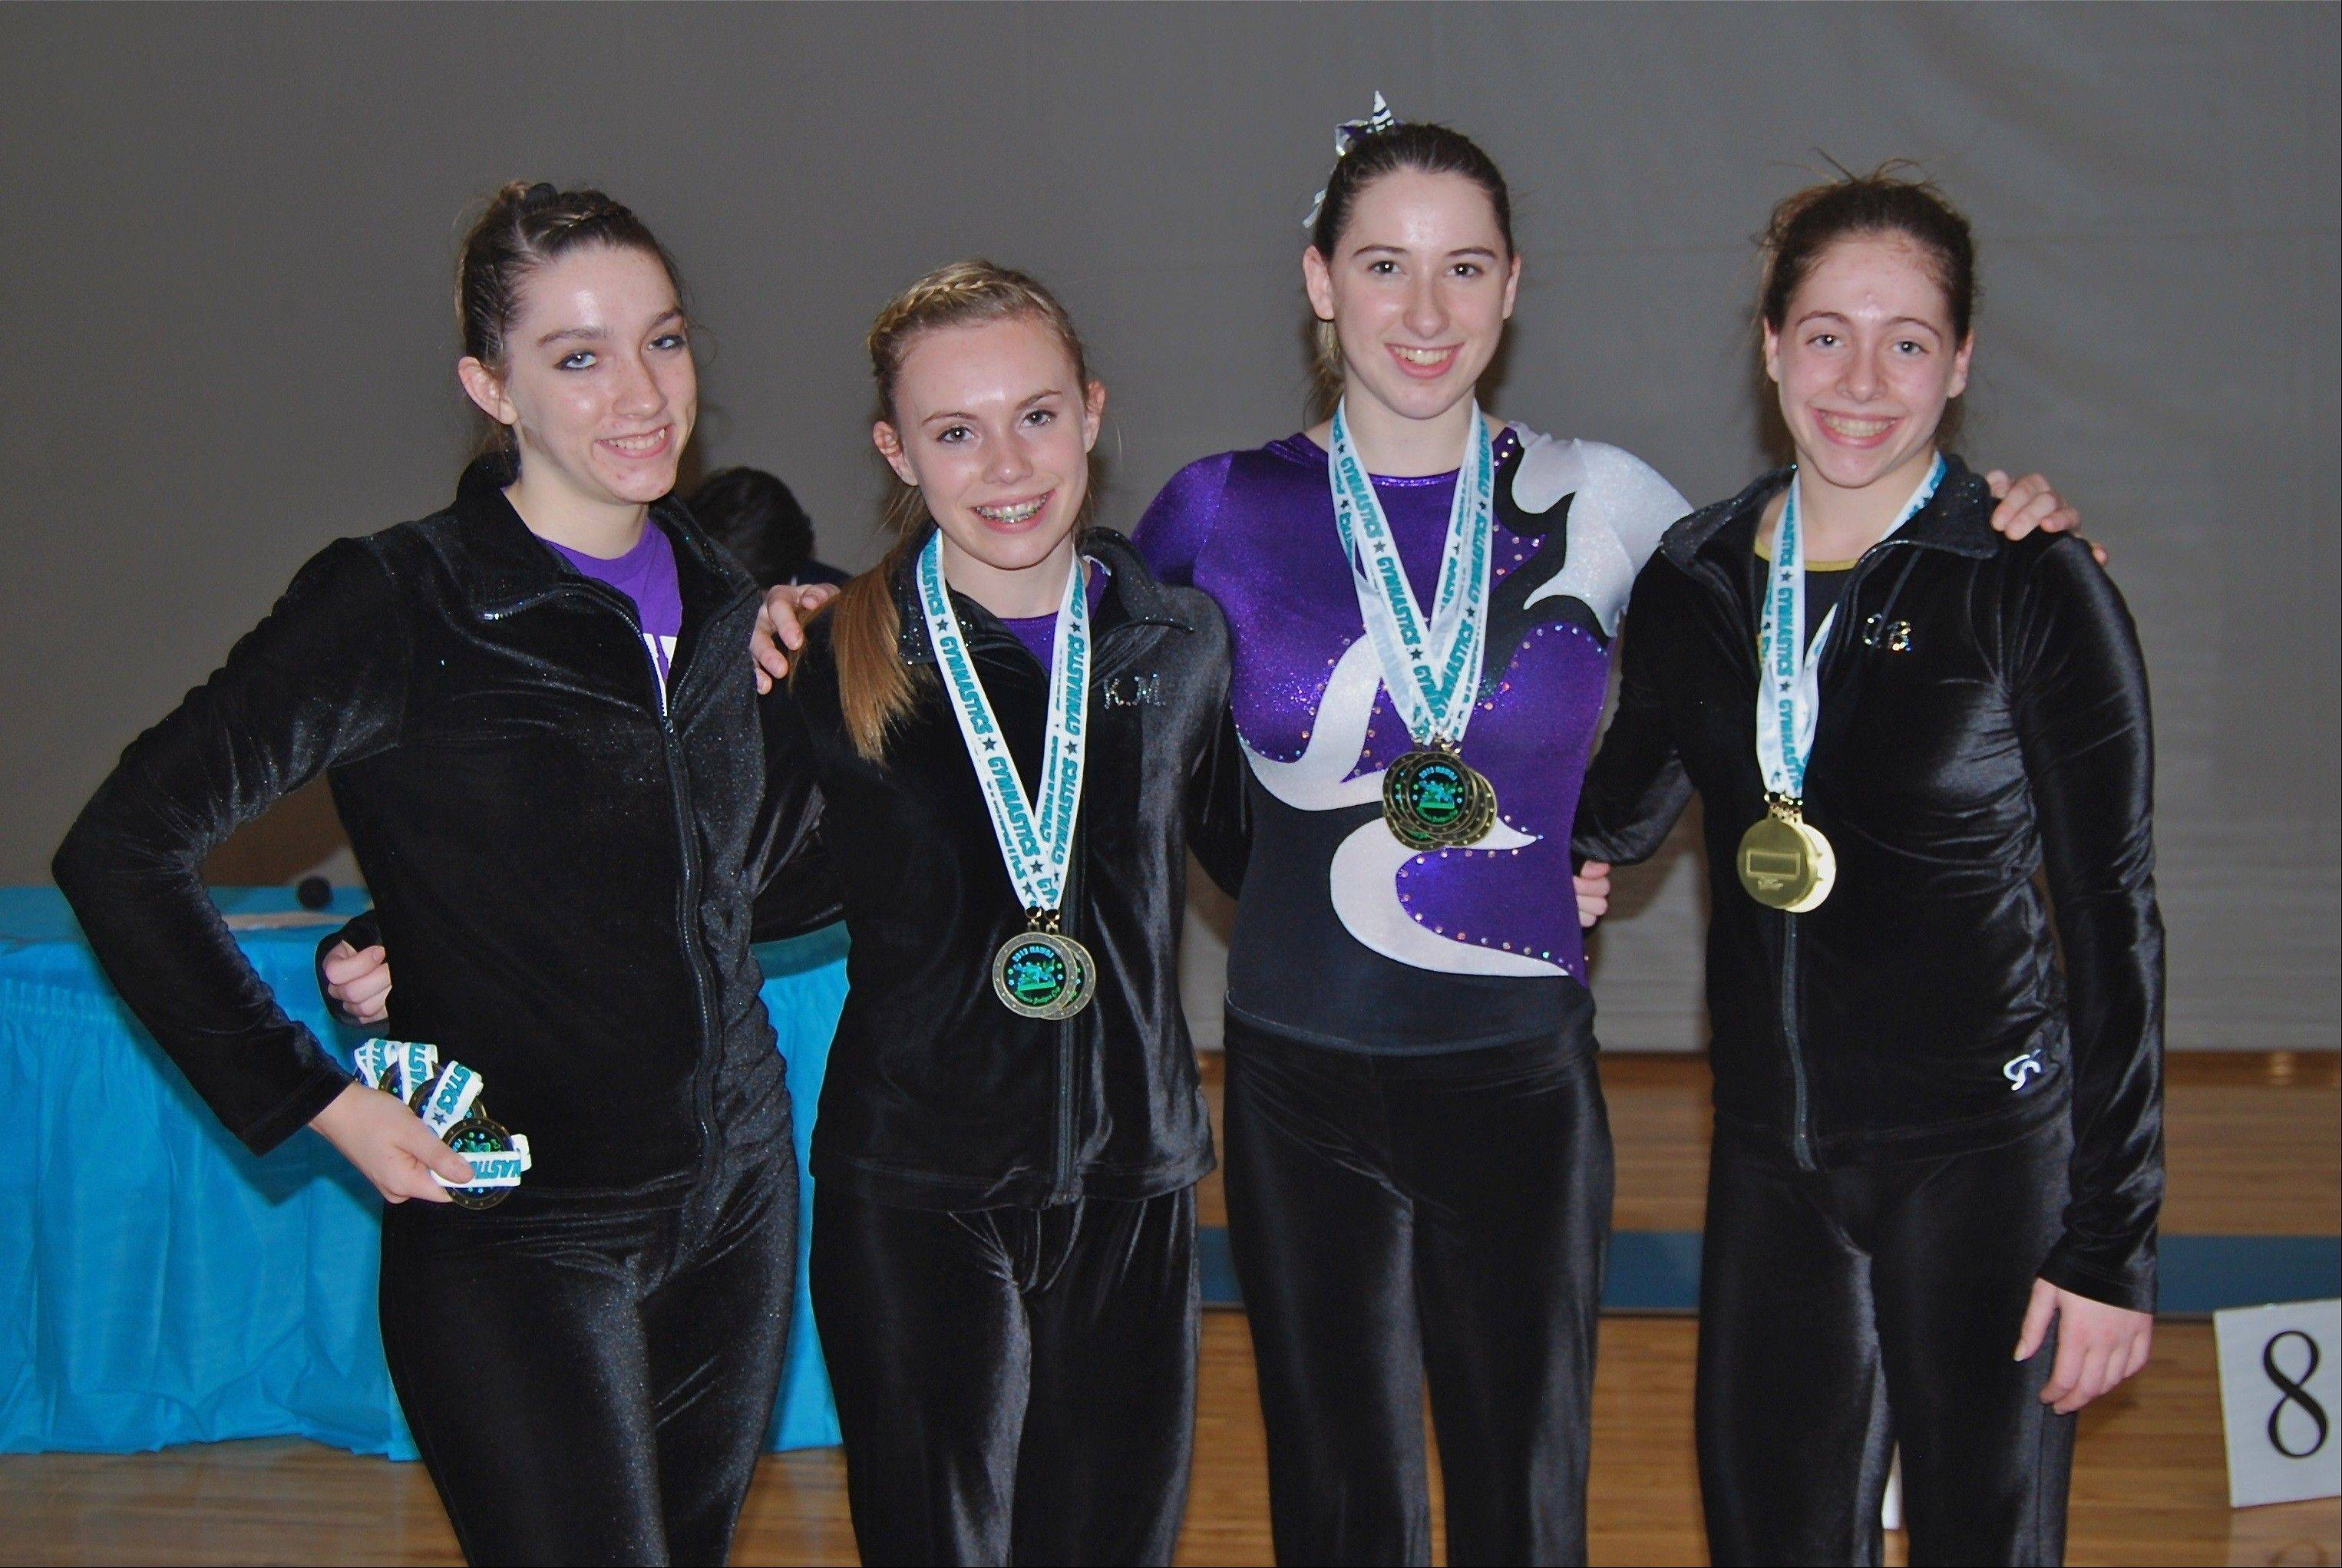 High school gymnasts, from left, Krystal Kofoed (Warren), Kyra McCue (Warren), Lauren Feely (Carmel) and Carli Betman (Glenbrook North), at the Illinois Judges Cup, held recently in Bourbonnais. The girls, who compete for Ultimate Gymnastics of Gurnee, used the opportunity to qualify for next spring's Illinois State Meet before the high school season begins. Also competing for Ultimate Gymnastics, was Lake Forest's Brittany Moccia, not pictured.